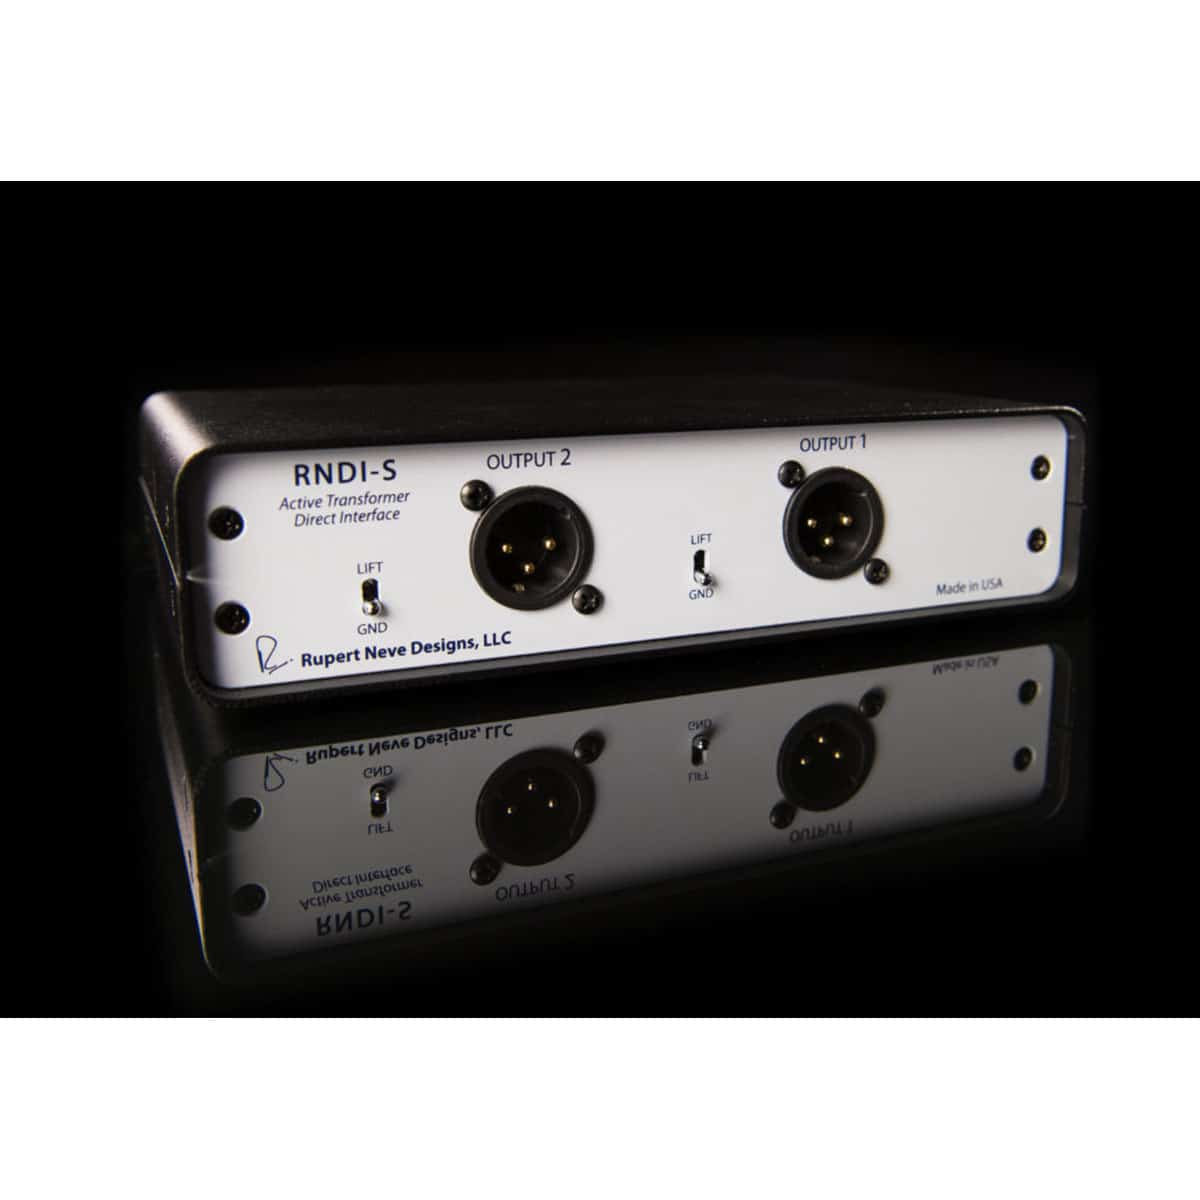 Rupert Neve RNDI S 03 Pro Audio, Outboard, D.I./Reamp